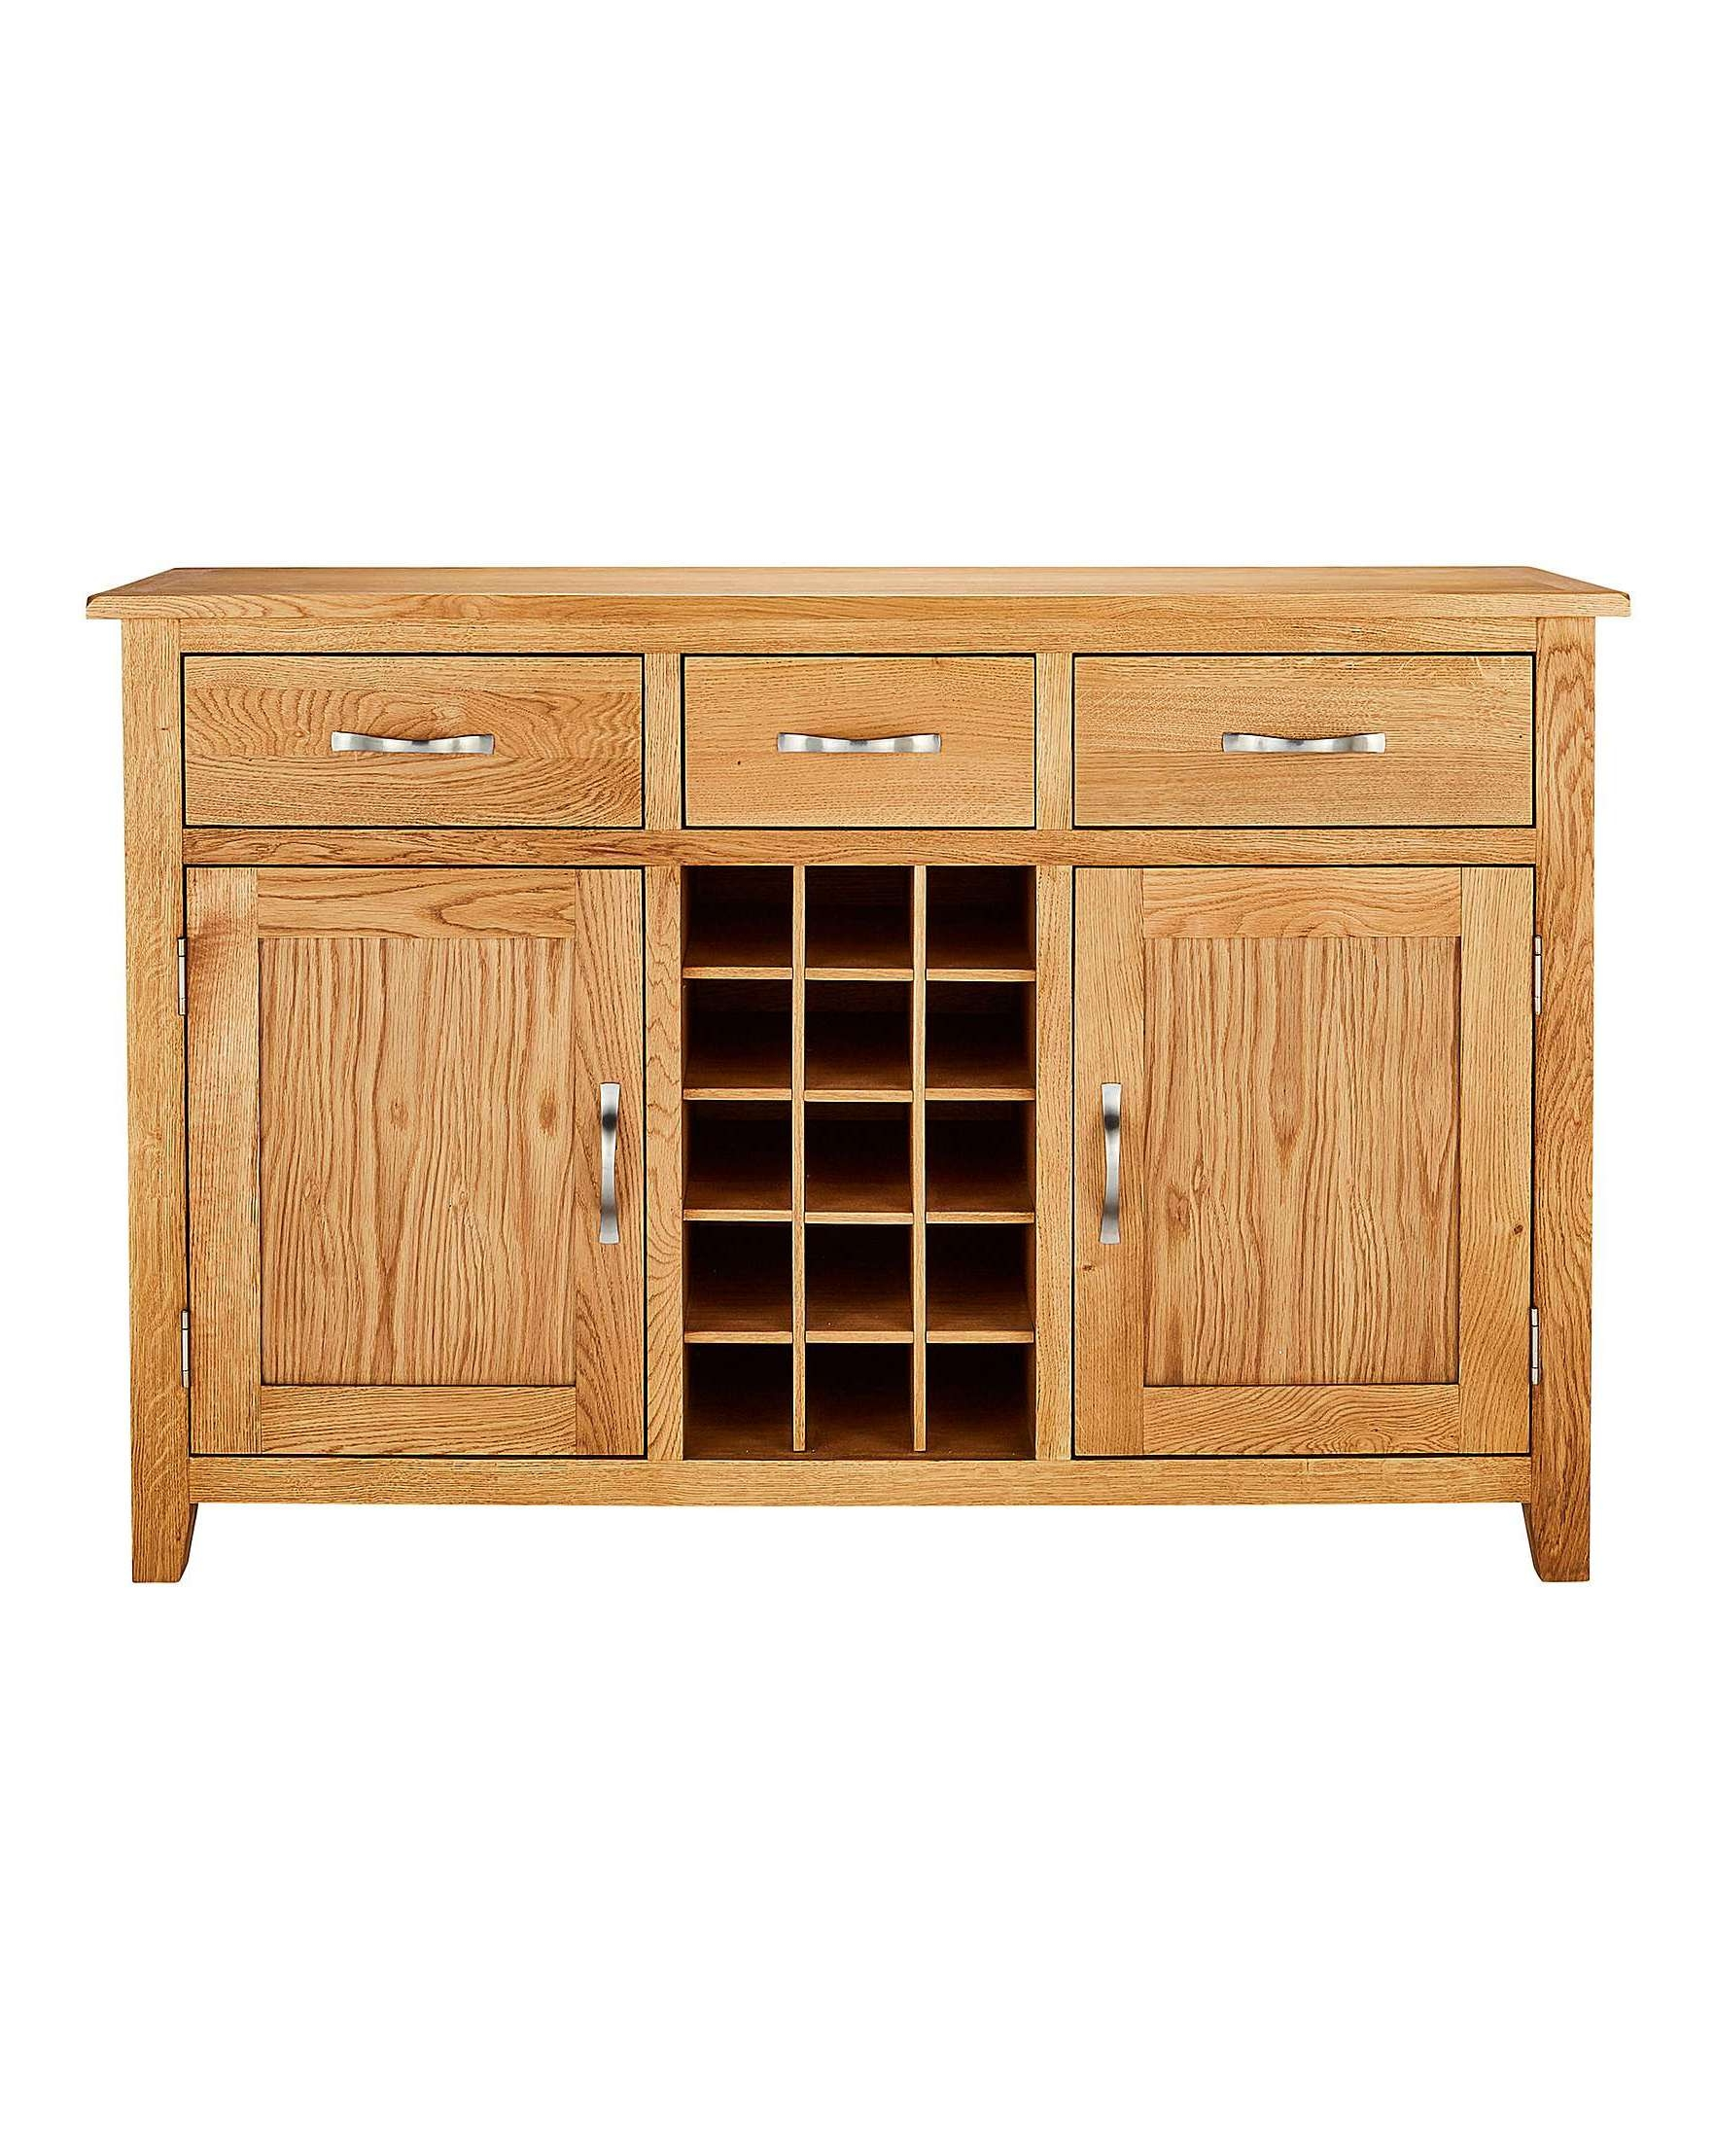 Cabinets & Sideboards | Lounge Furniture | Home | J D Williams In Lounge Sideboards (View 2 of 20)